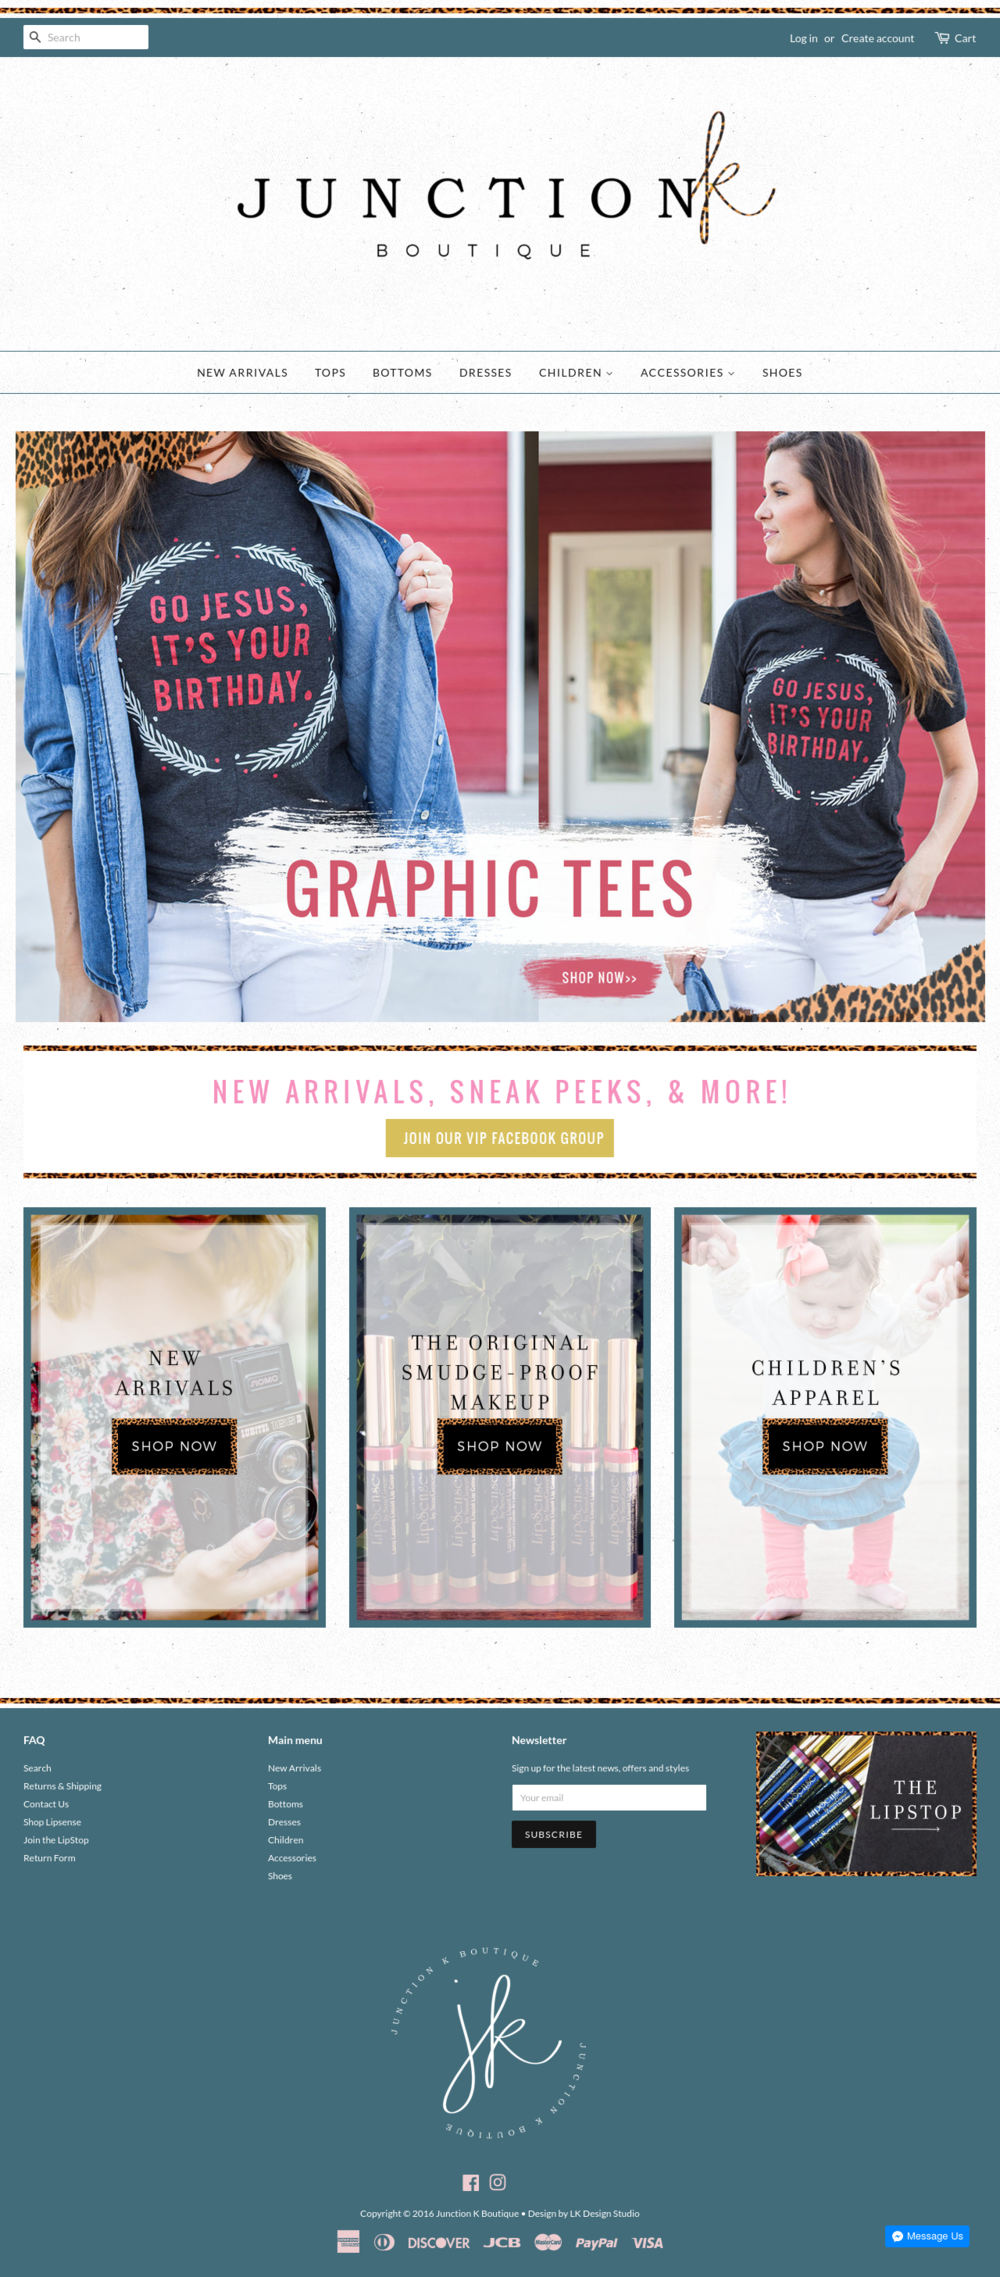 Junction K Boutique | Web Design Shopify